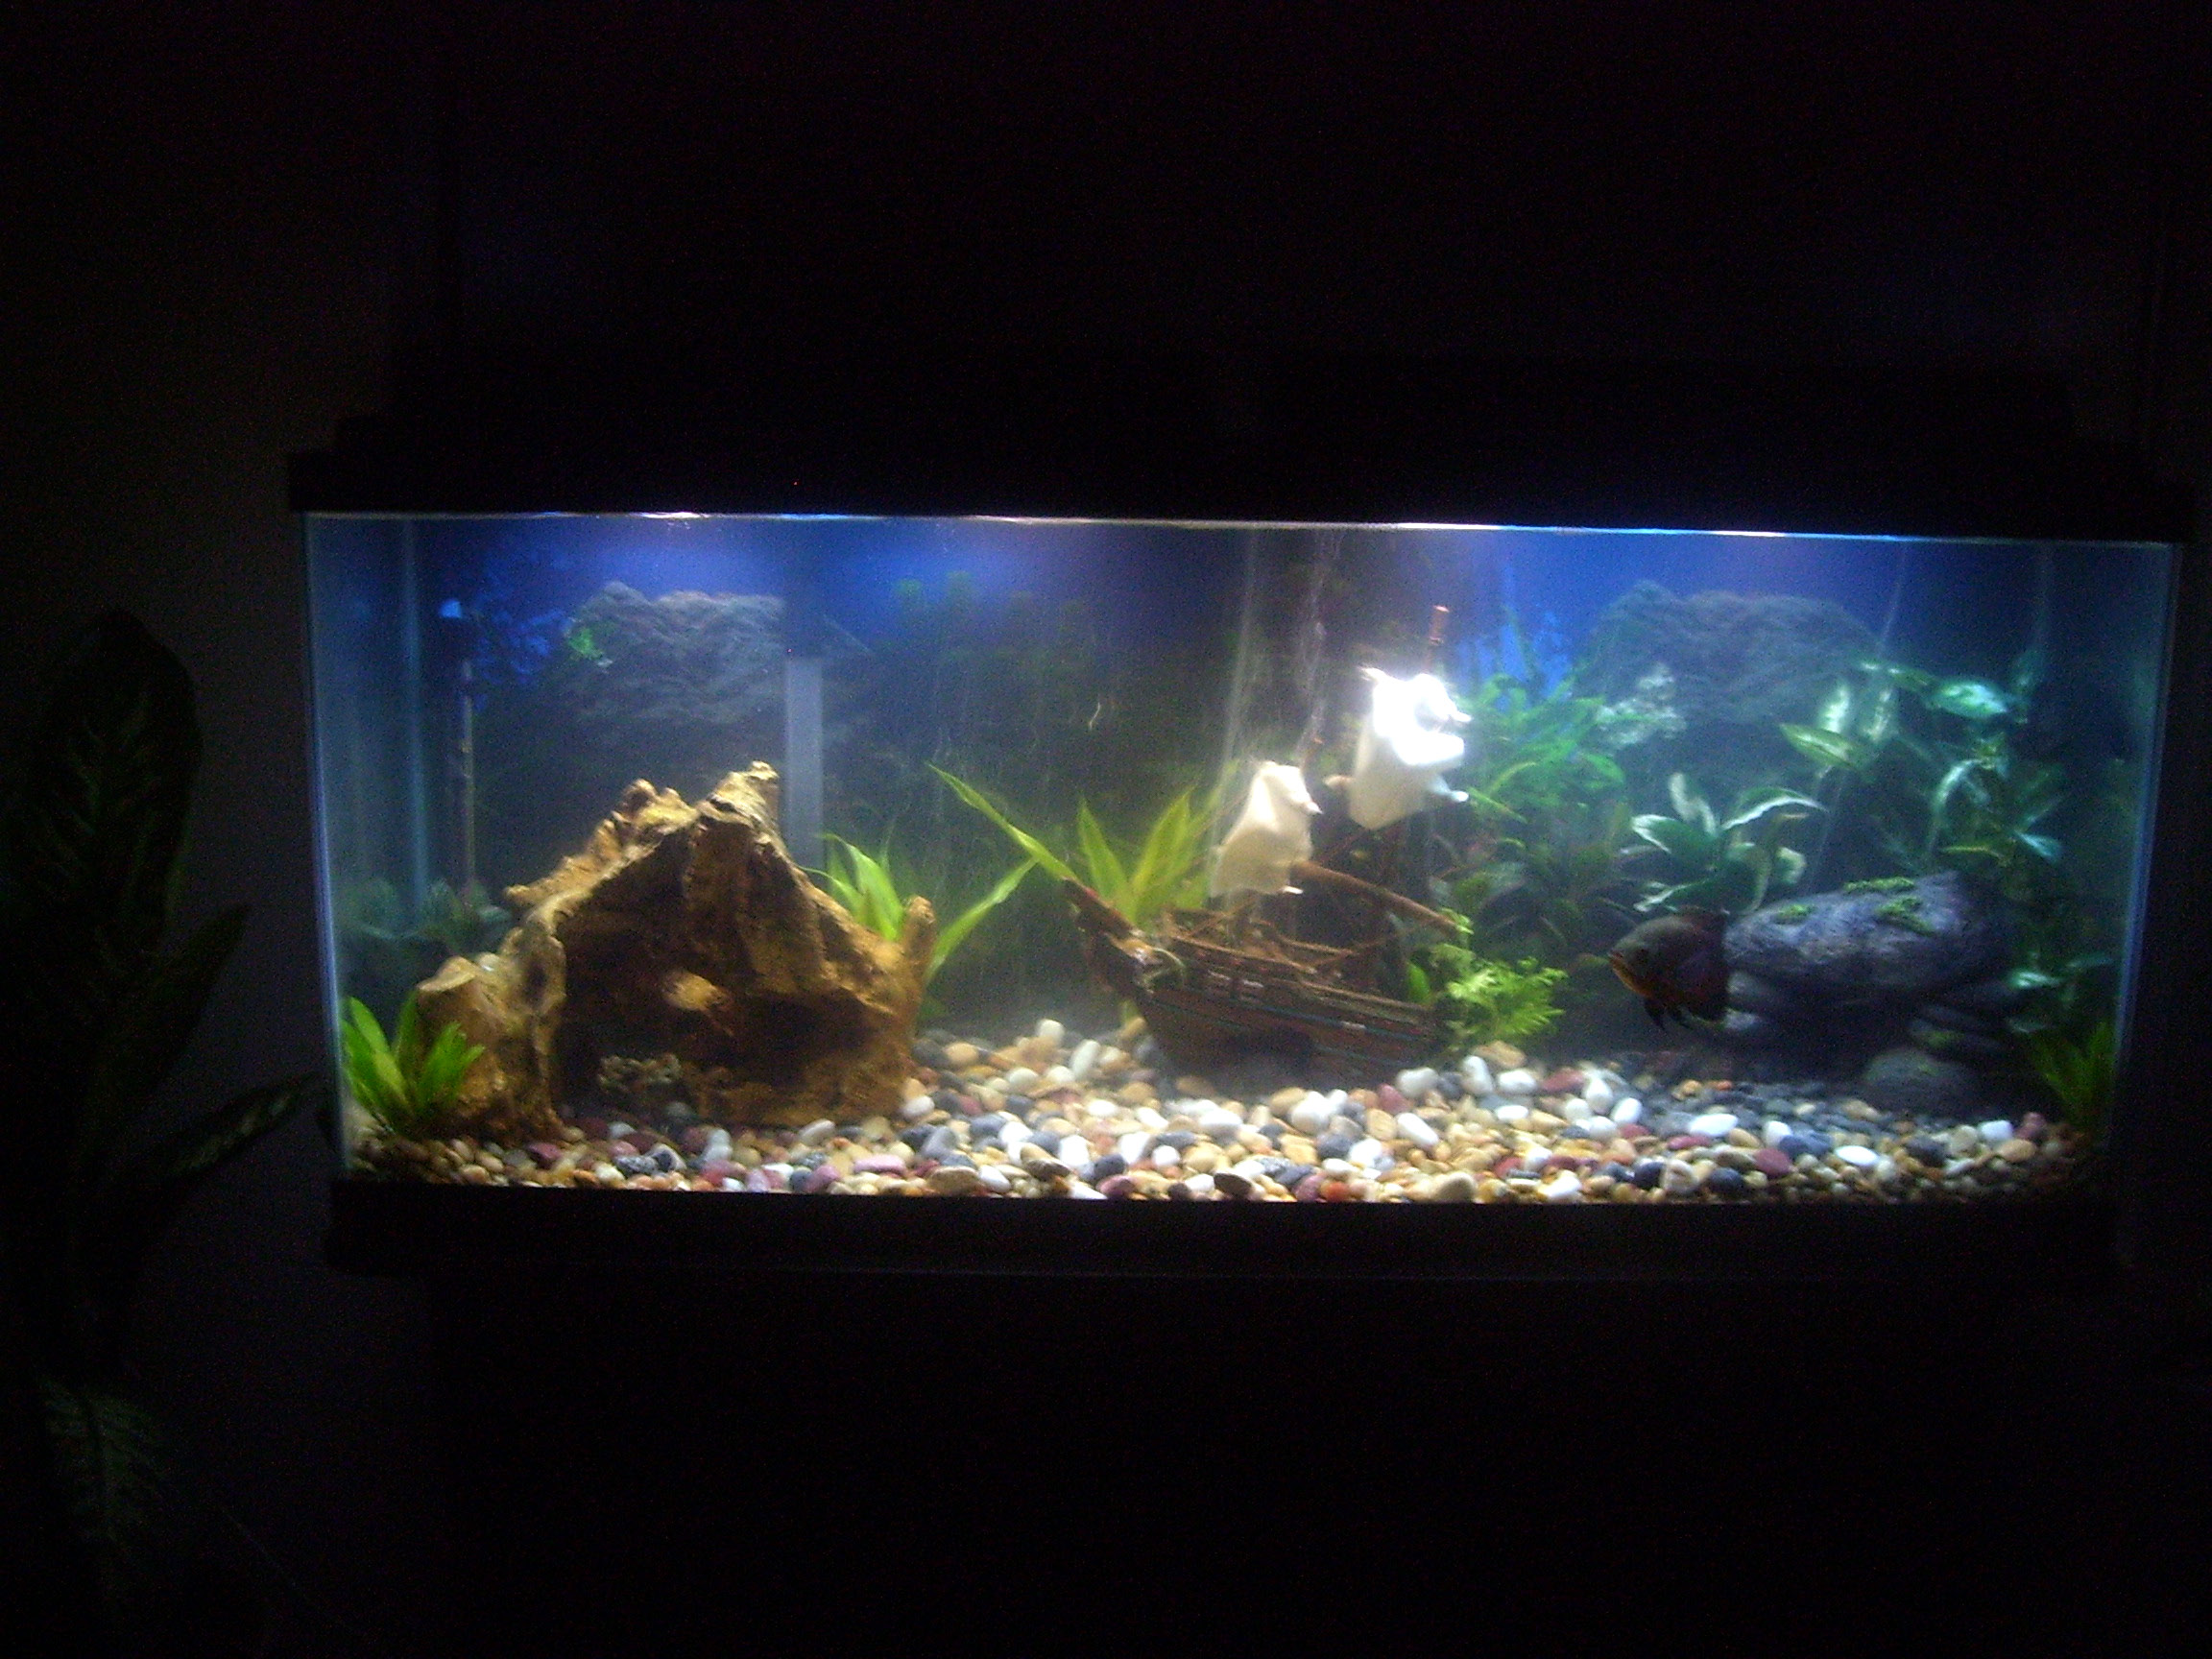 Thanasis nikas New decoration in my 100l malawi tank also KI4uUlG3x3c together with Tank setups for oscars together with NEW 72GALLON BOWFRONT moreover Tank setups for oscars. on oscar cichlid in 10 gal tank